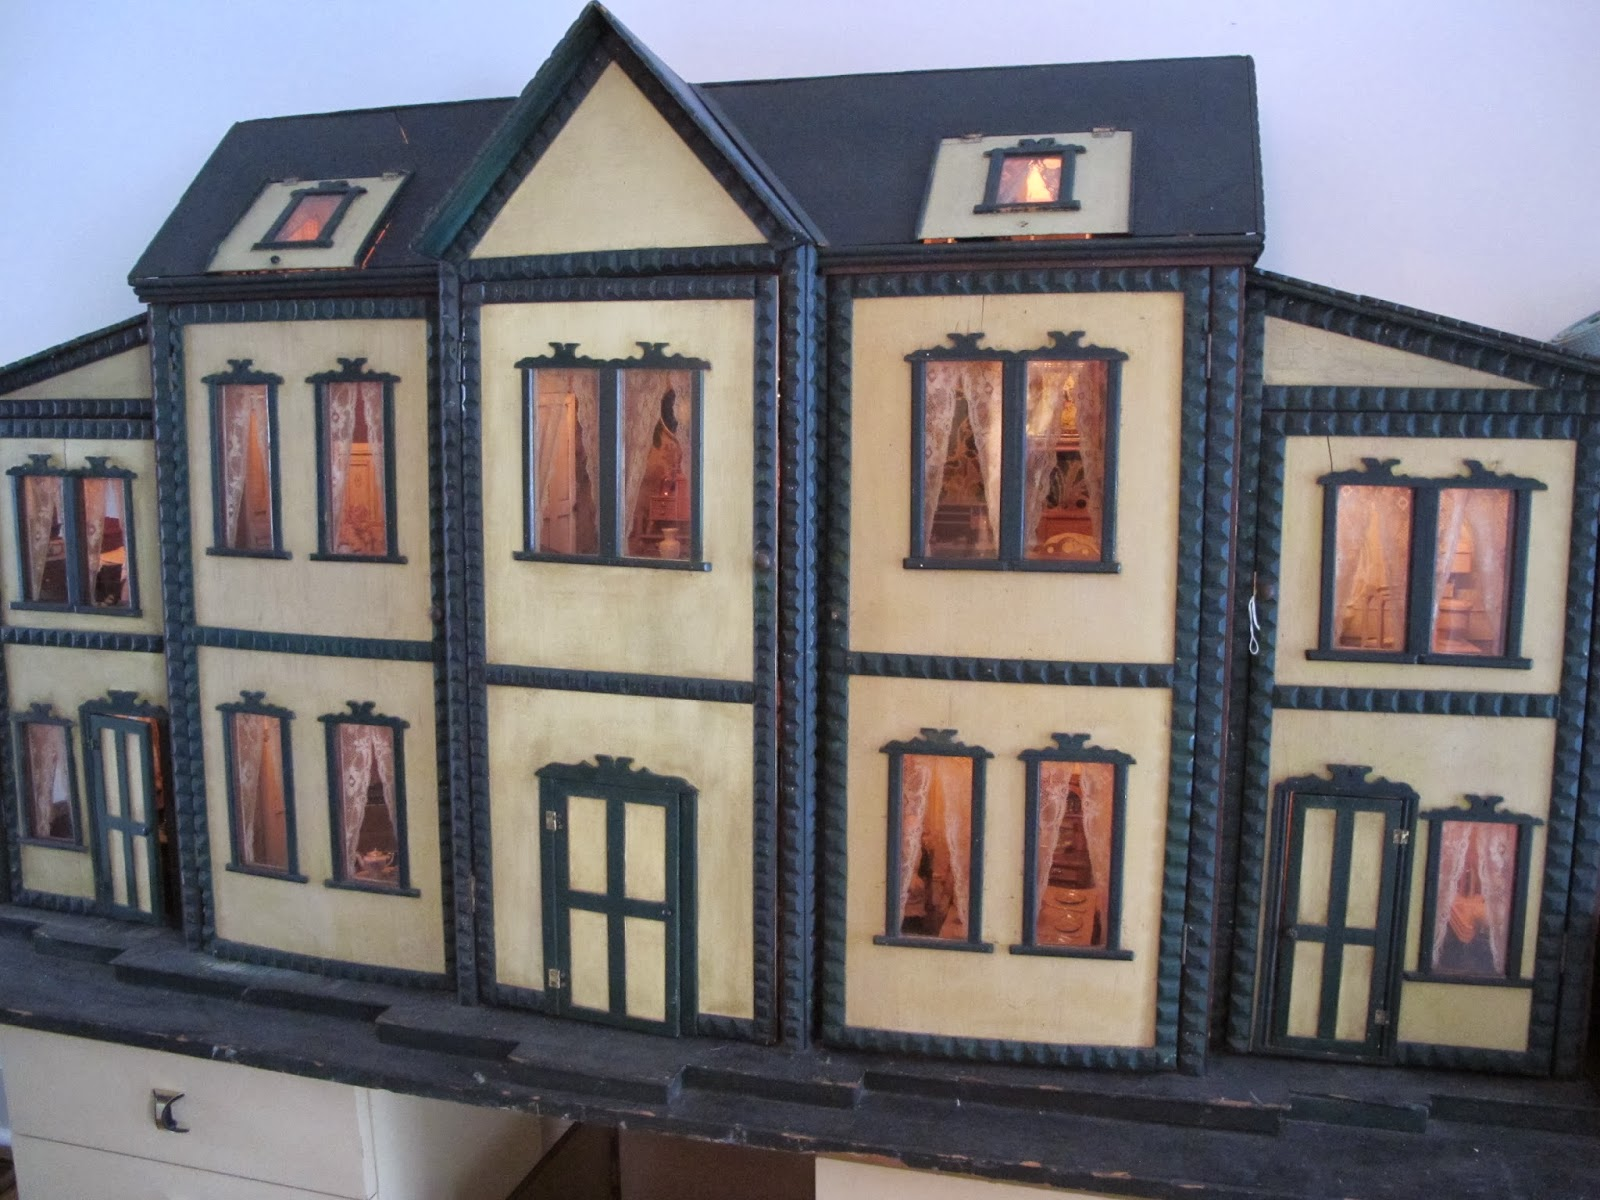 A Rare 19th Century Doll House With A Mysterious Past By Susan Hale